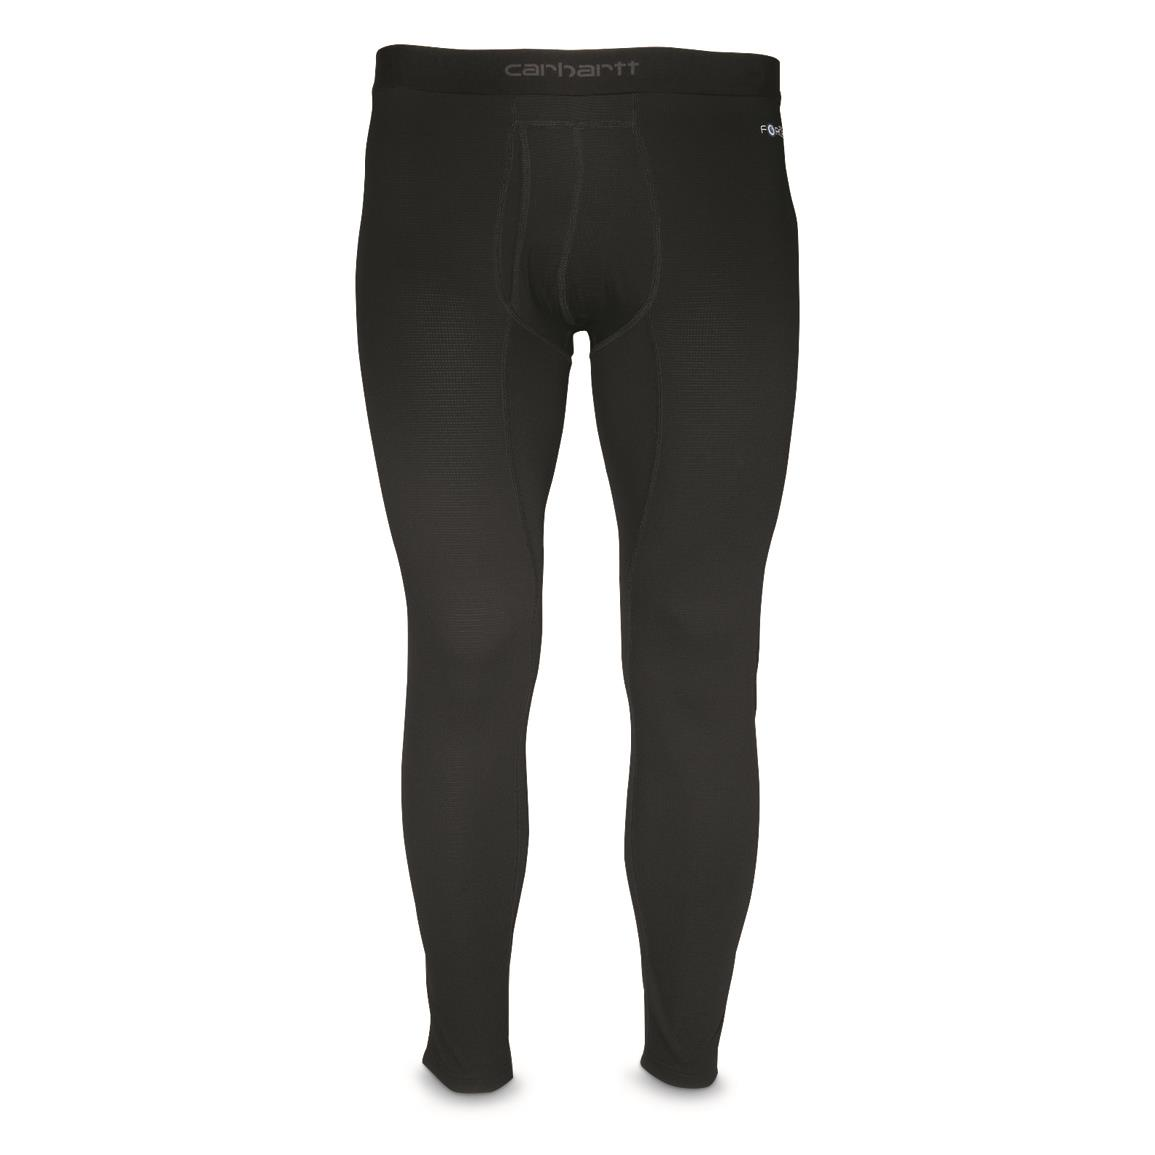 Carhartt Men's Base Force Midweight Classic Base Layer Bottoms, Black